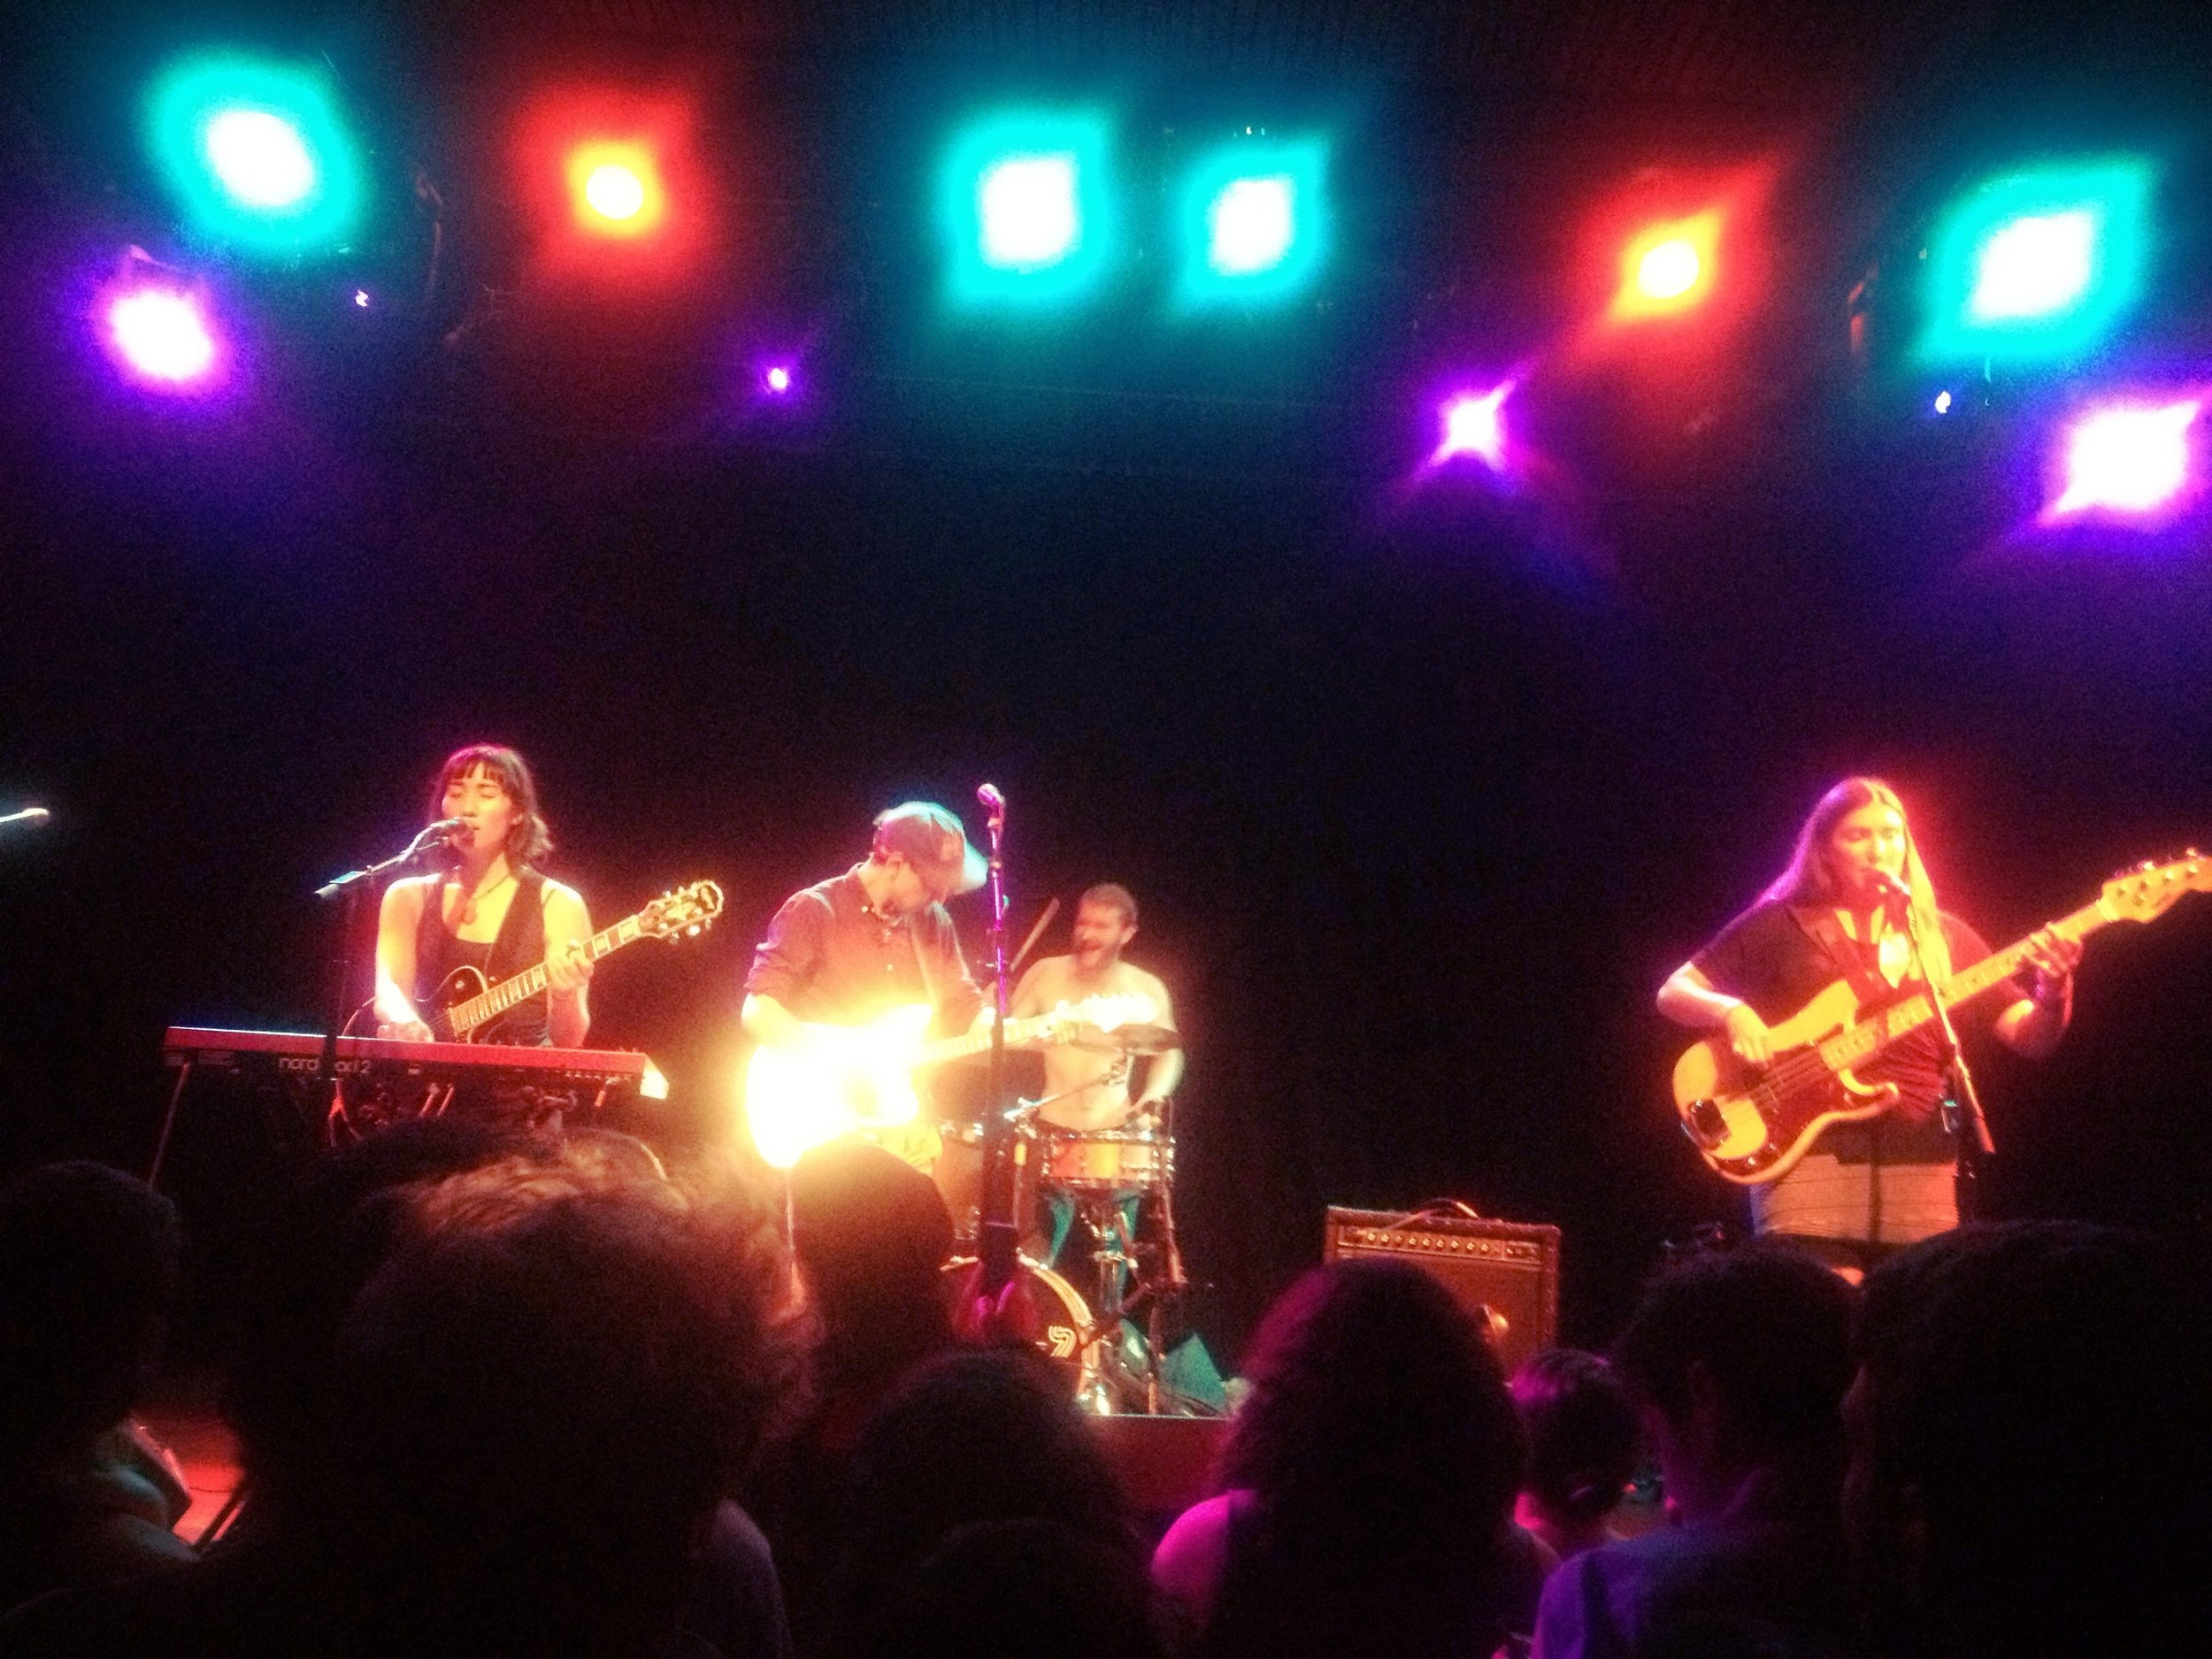 Trails and Ways playing a killer set at The Independent!